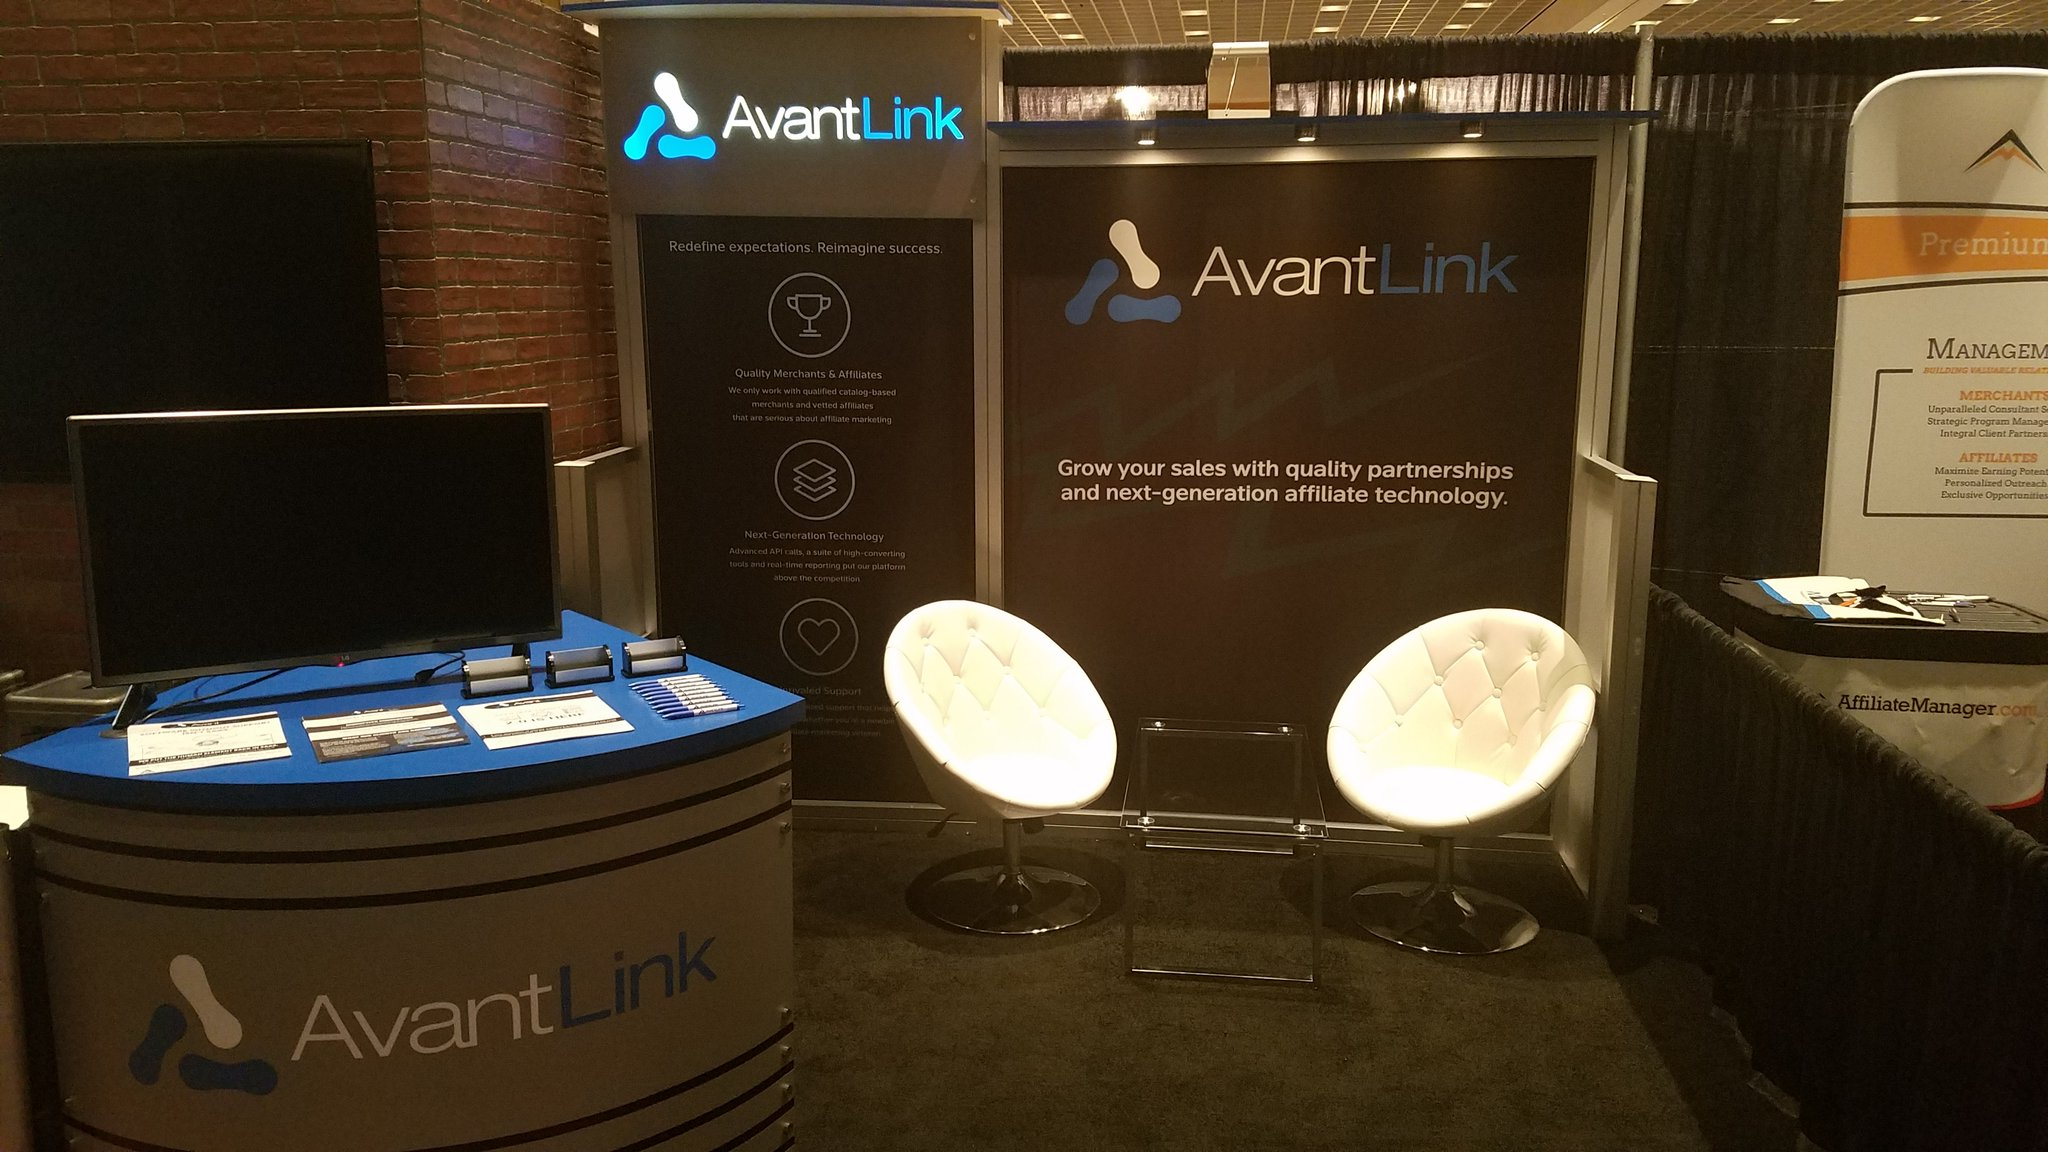 AvantLink at ASW 17